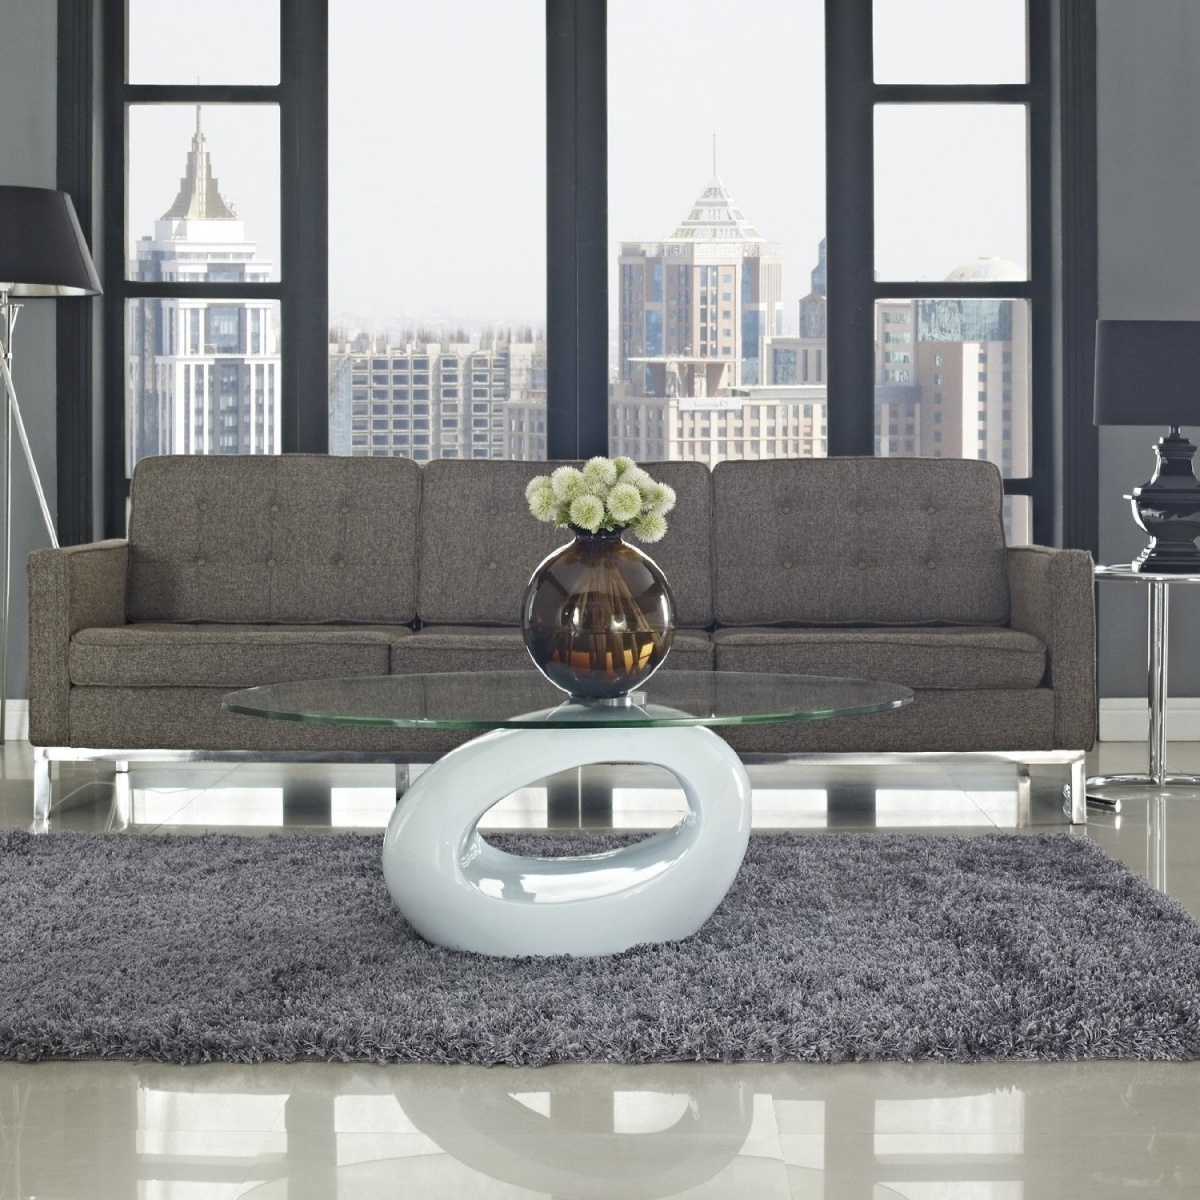 Living Room Wonderful Clear Glass Table Lamps For 2 Round Coffee With Regard To Popular Living Room Coffee Table Lamps (View 14 of 20)